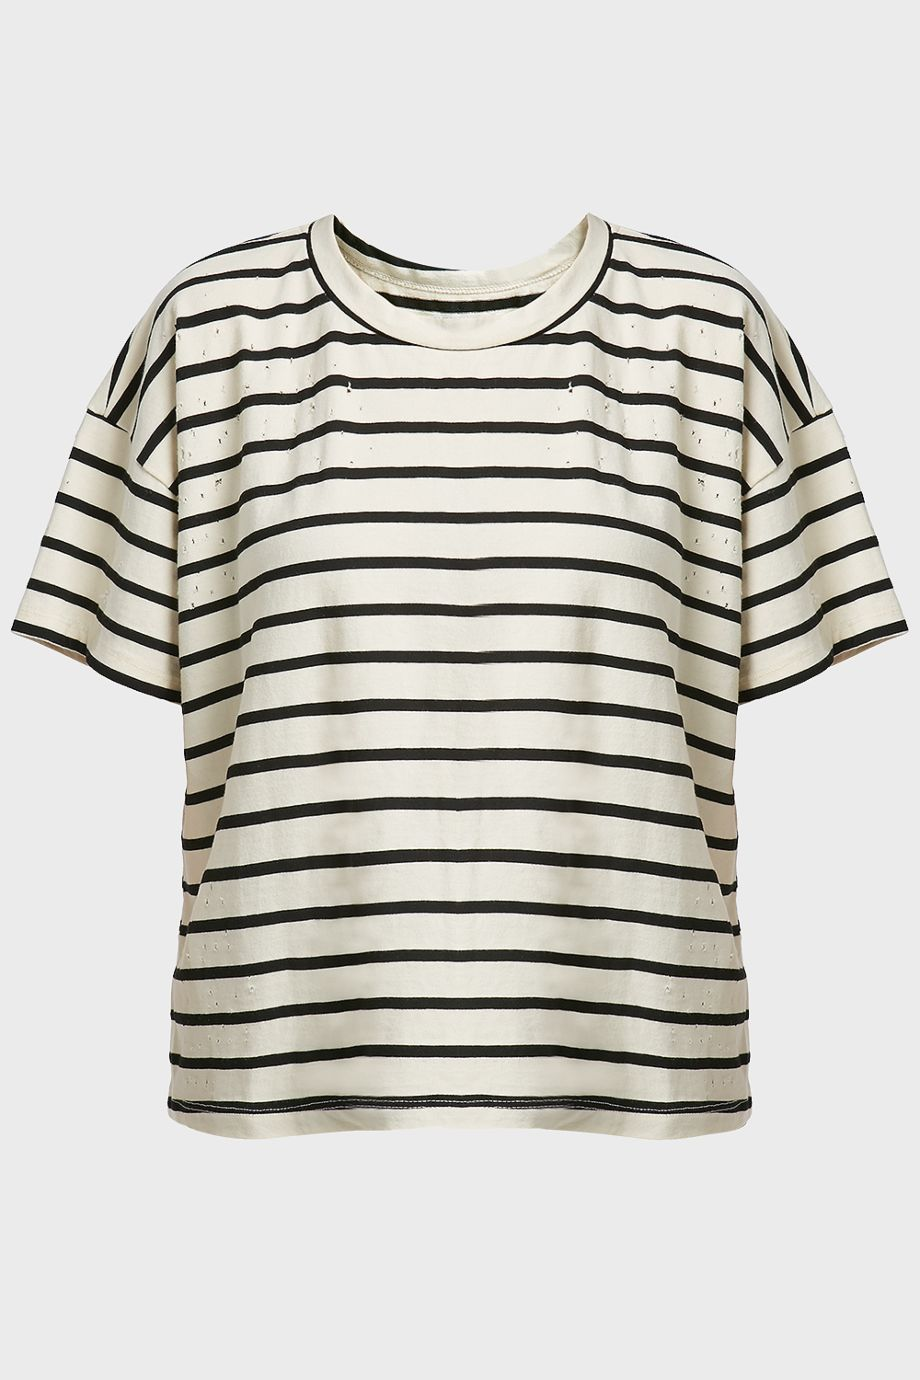 The Roadie Striped Tee-Shirt